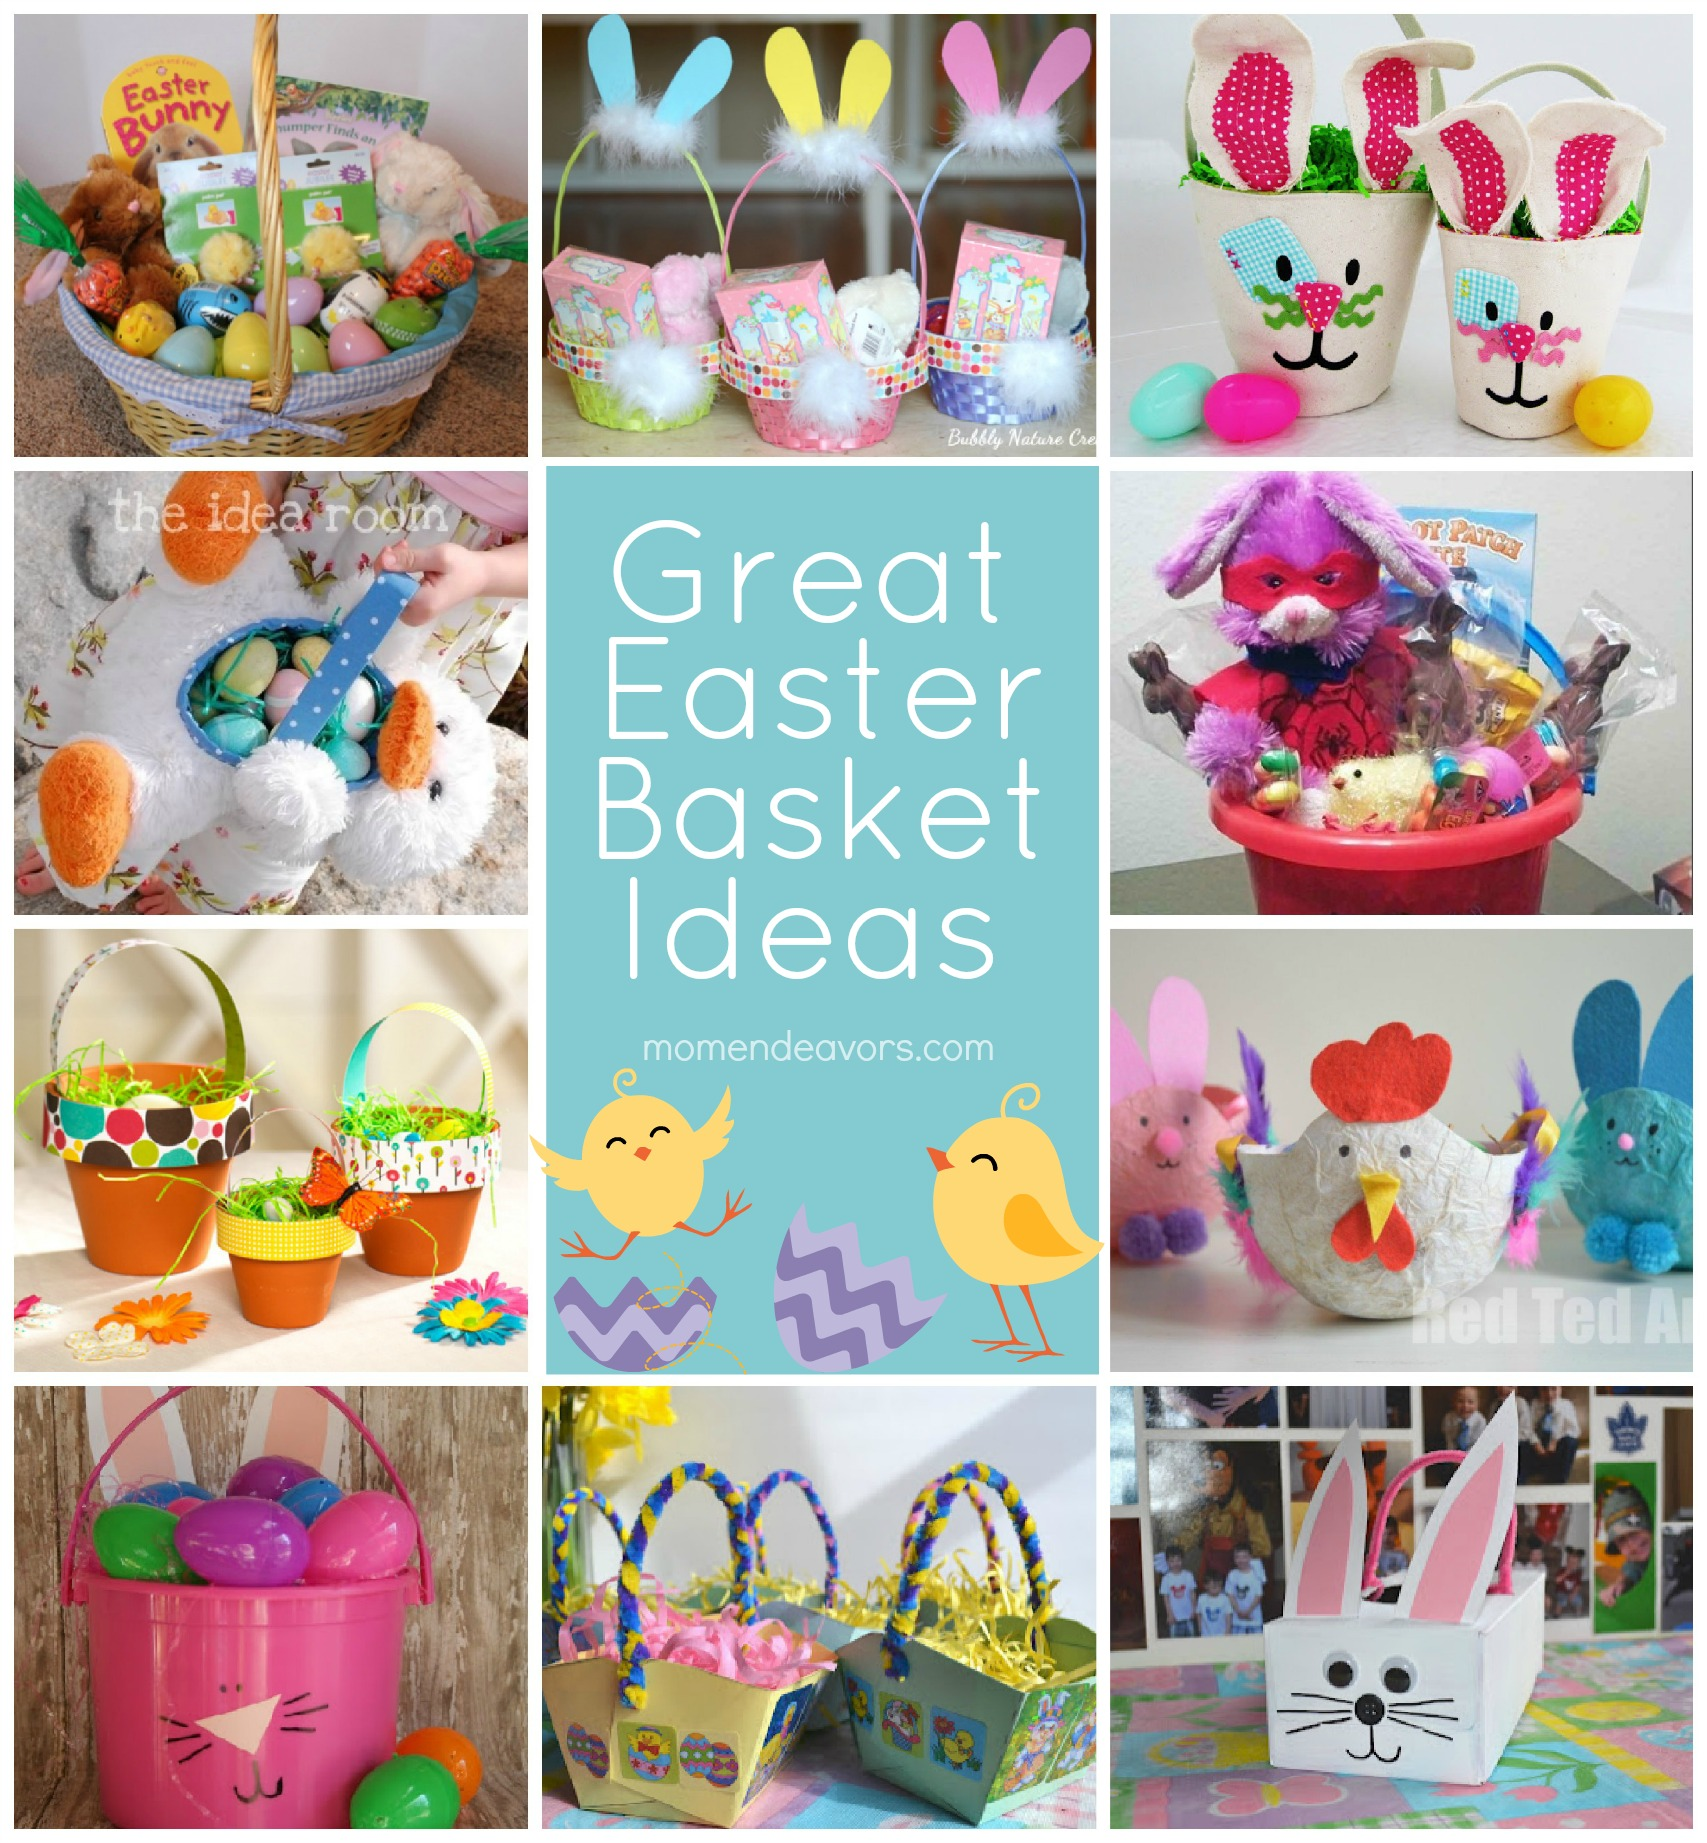 Easter basket ideas for toddlers home design mannahatta gallery for homemade easter basket ideas for kids negle Choice Image